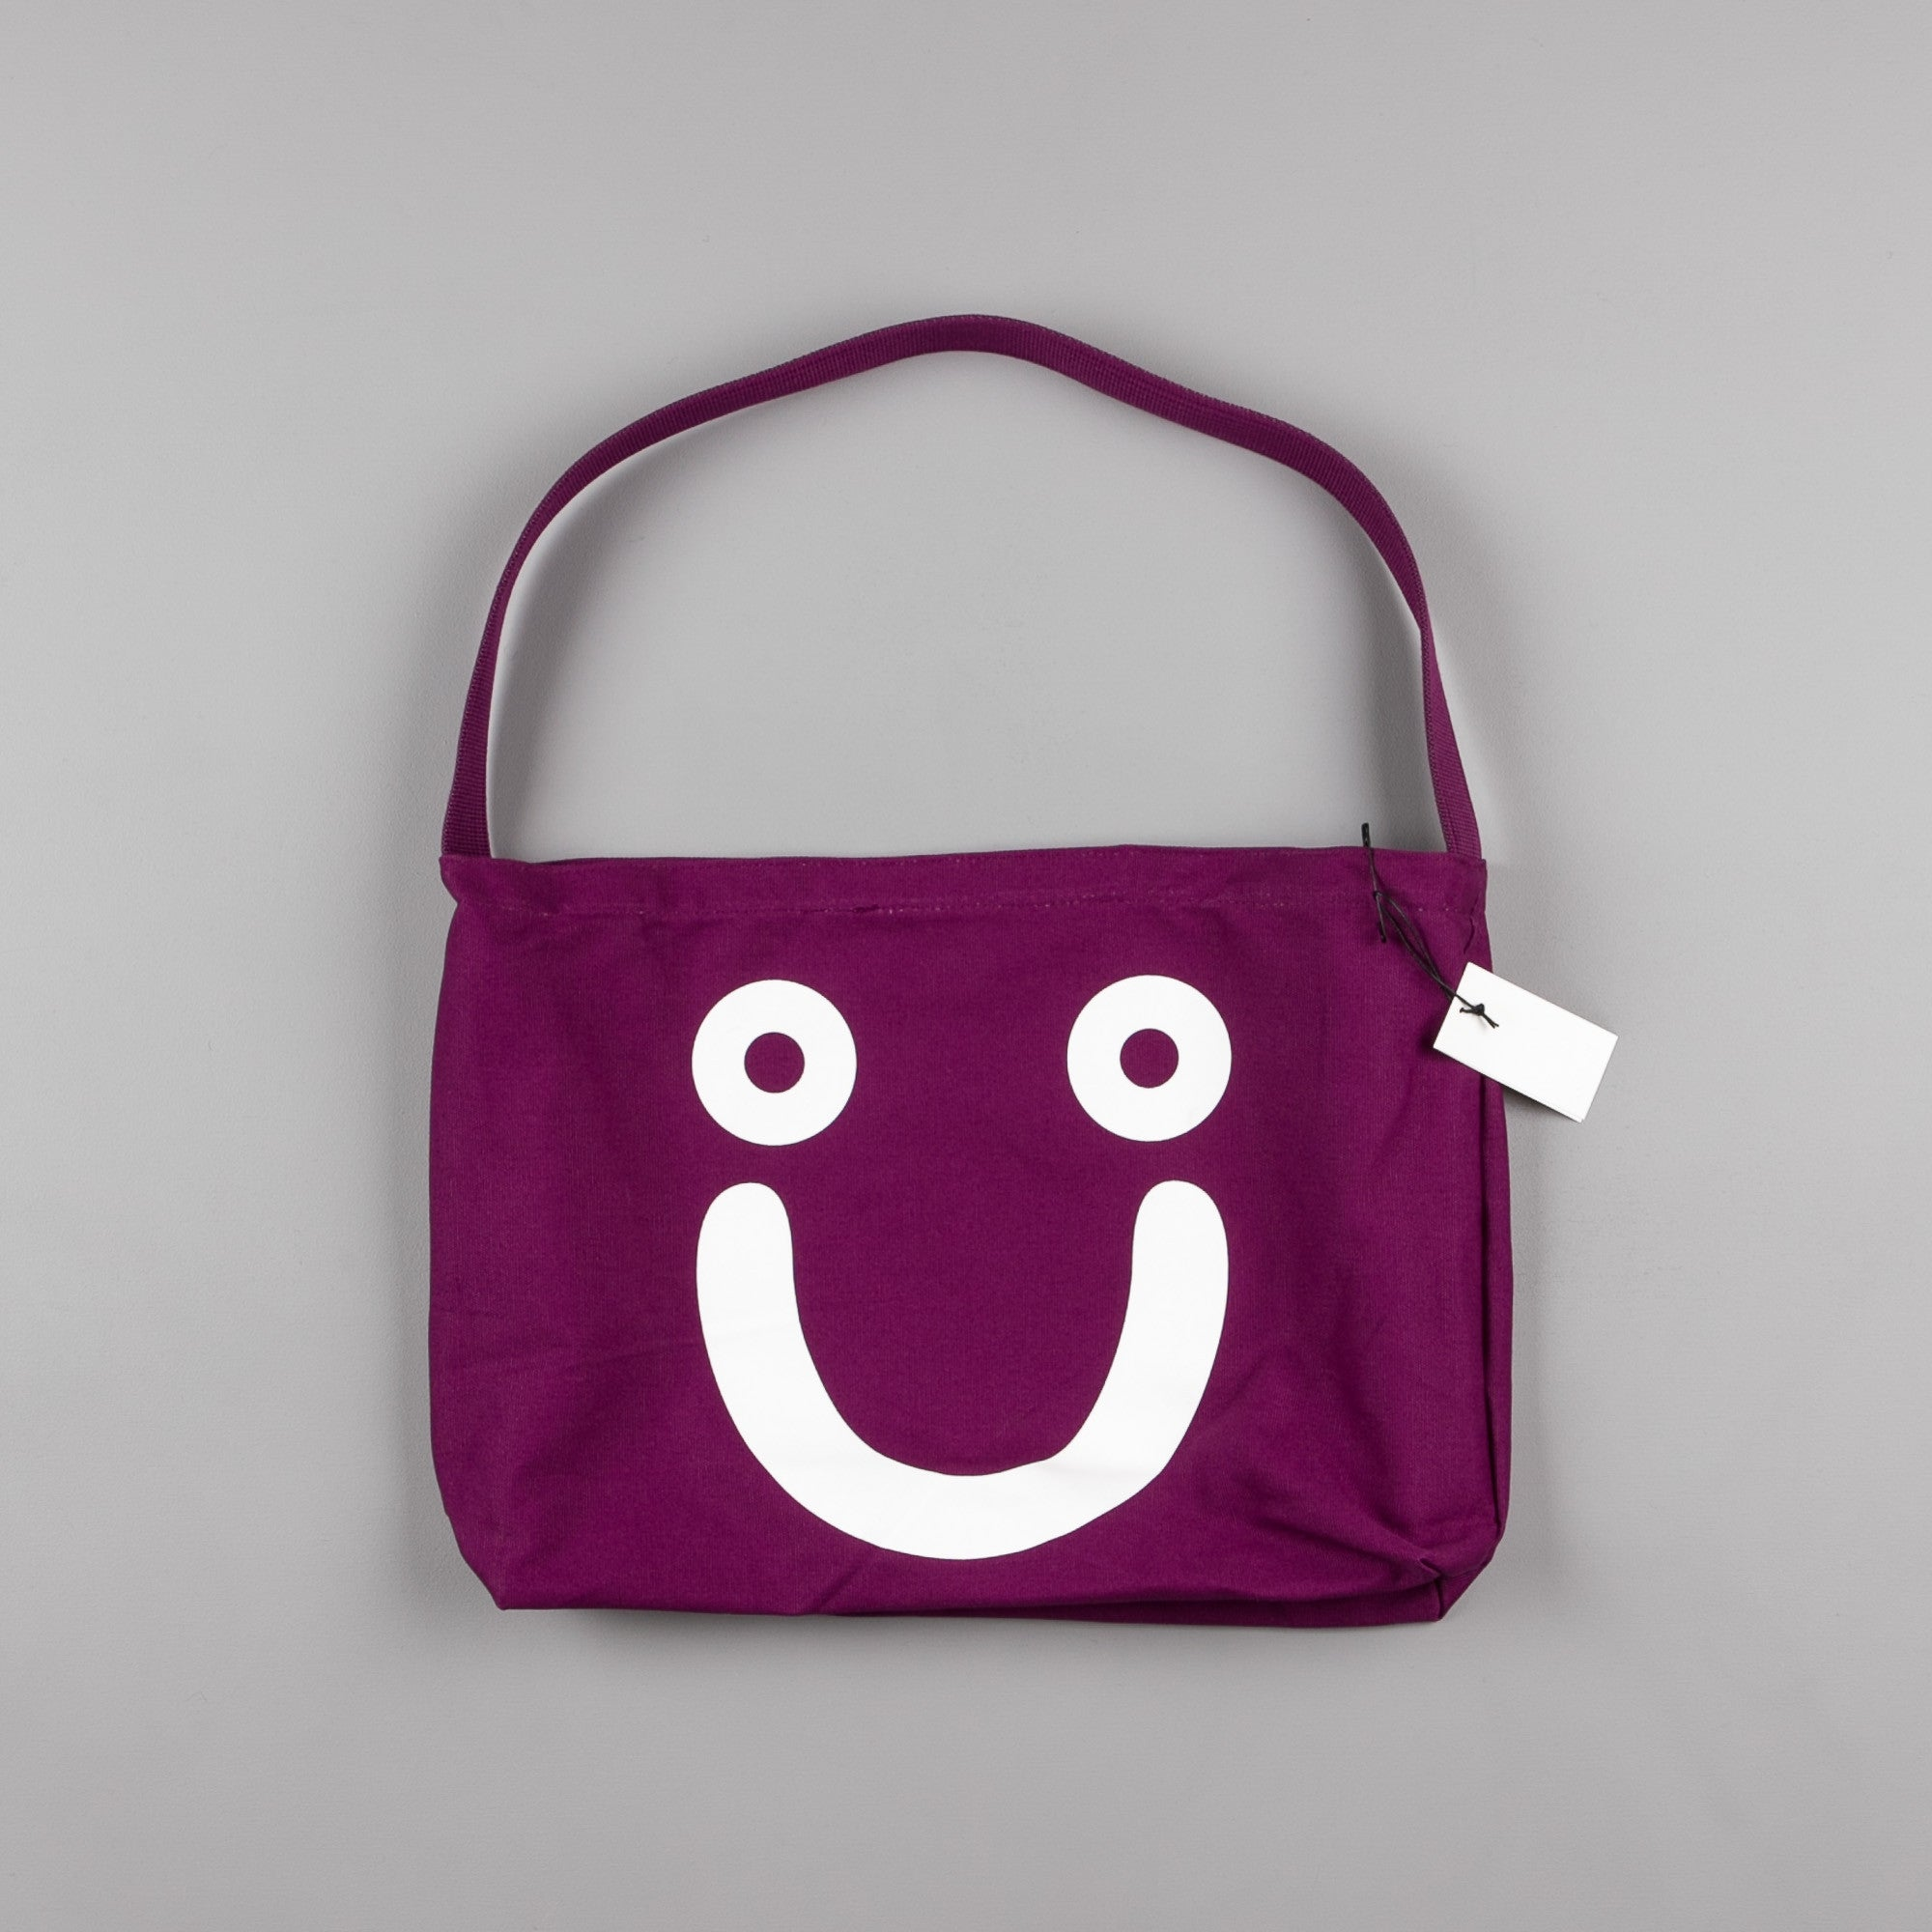 Polar Happy Sad Tote Bag - Dark Prune